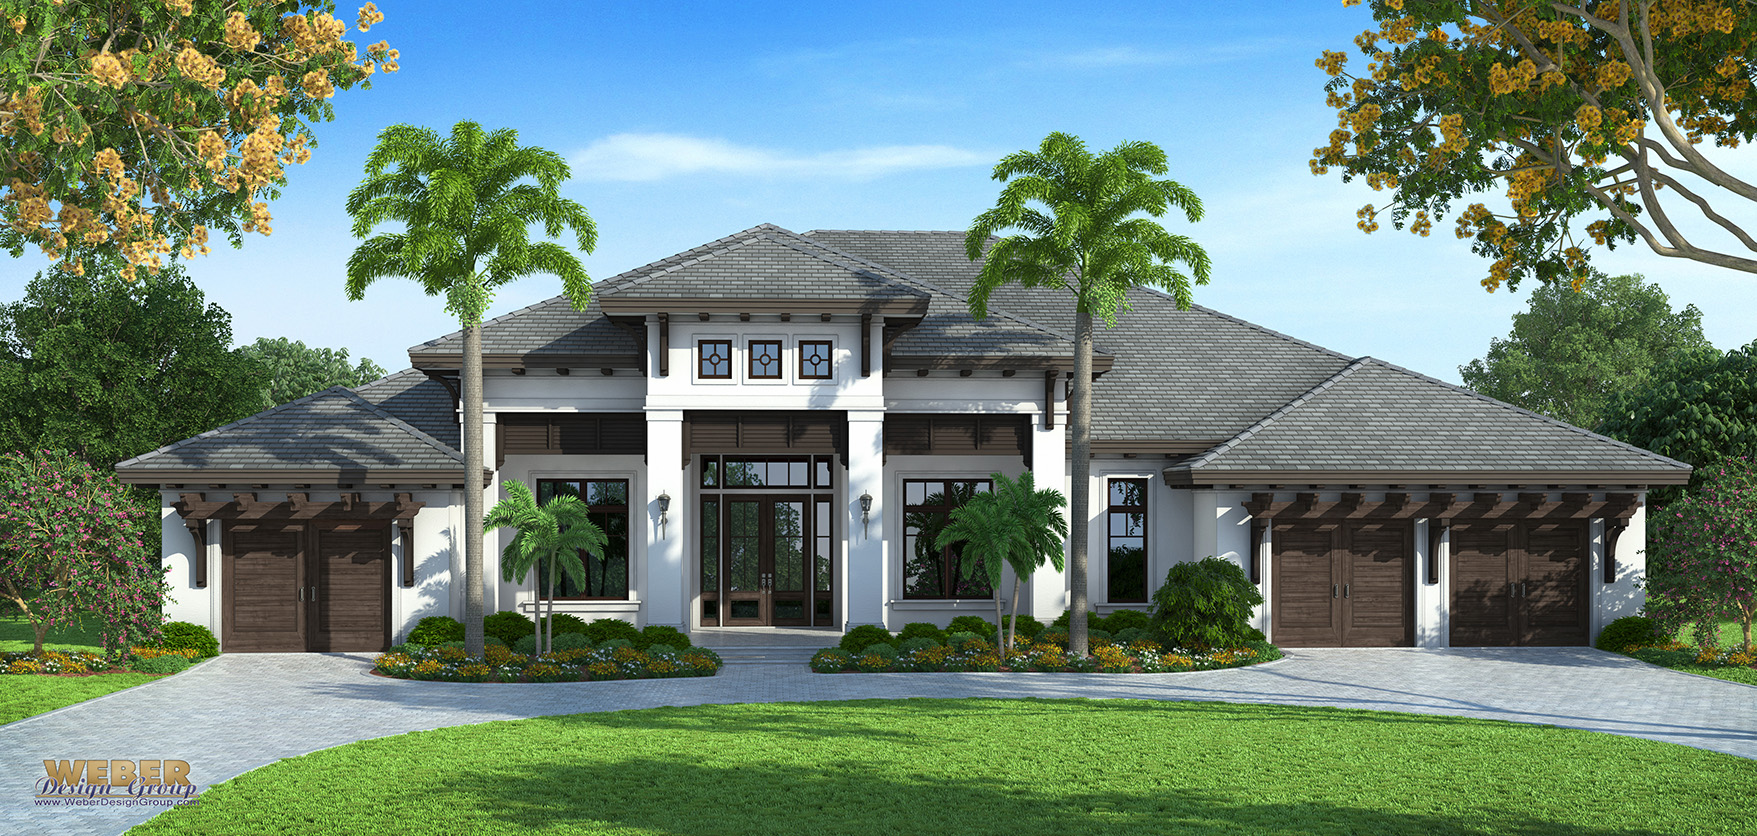 West indies home plan abacoa model weber design group for West indies house plans